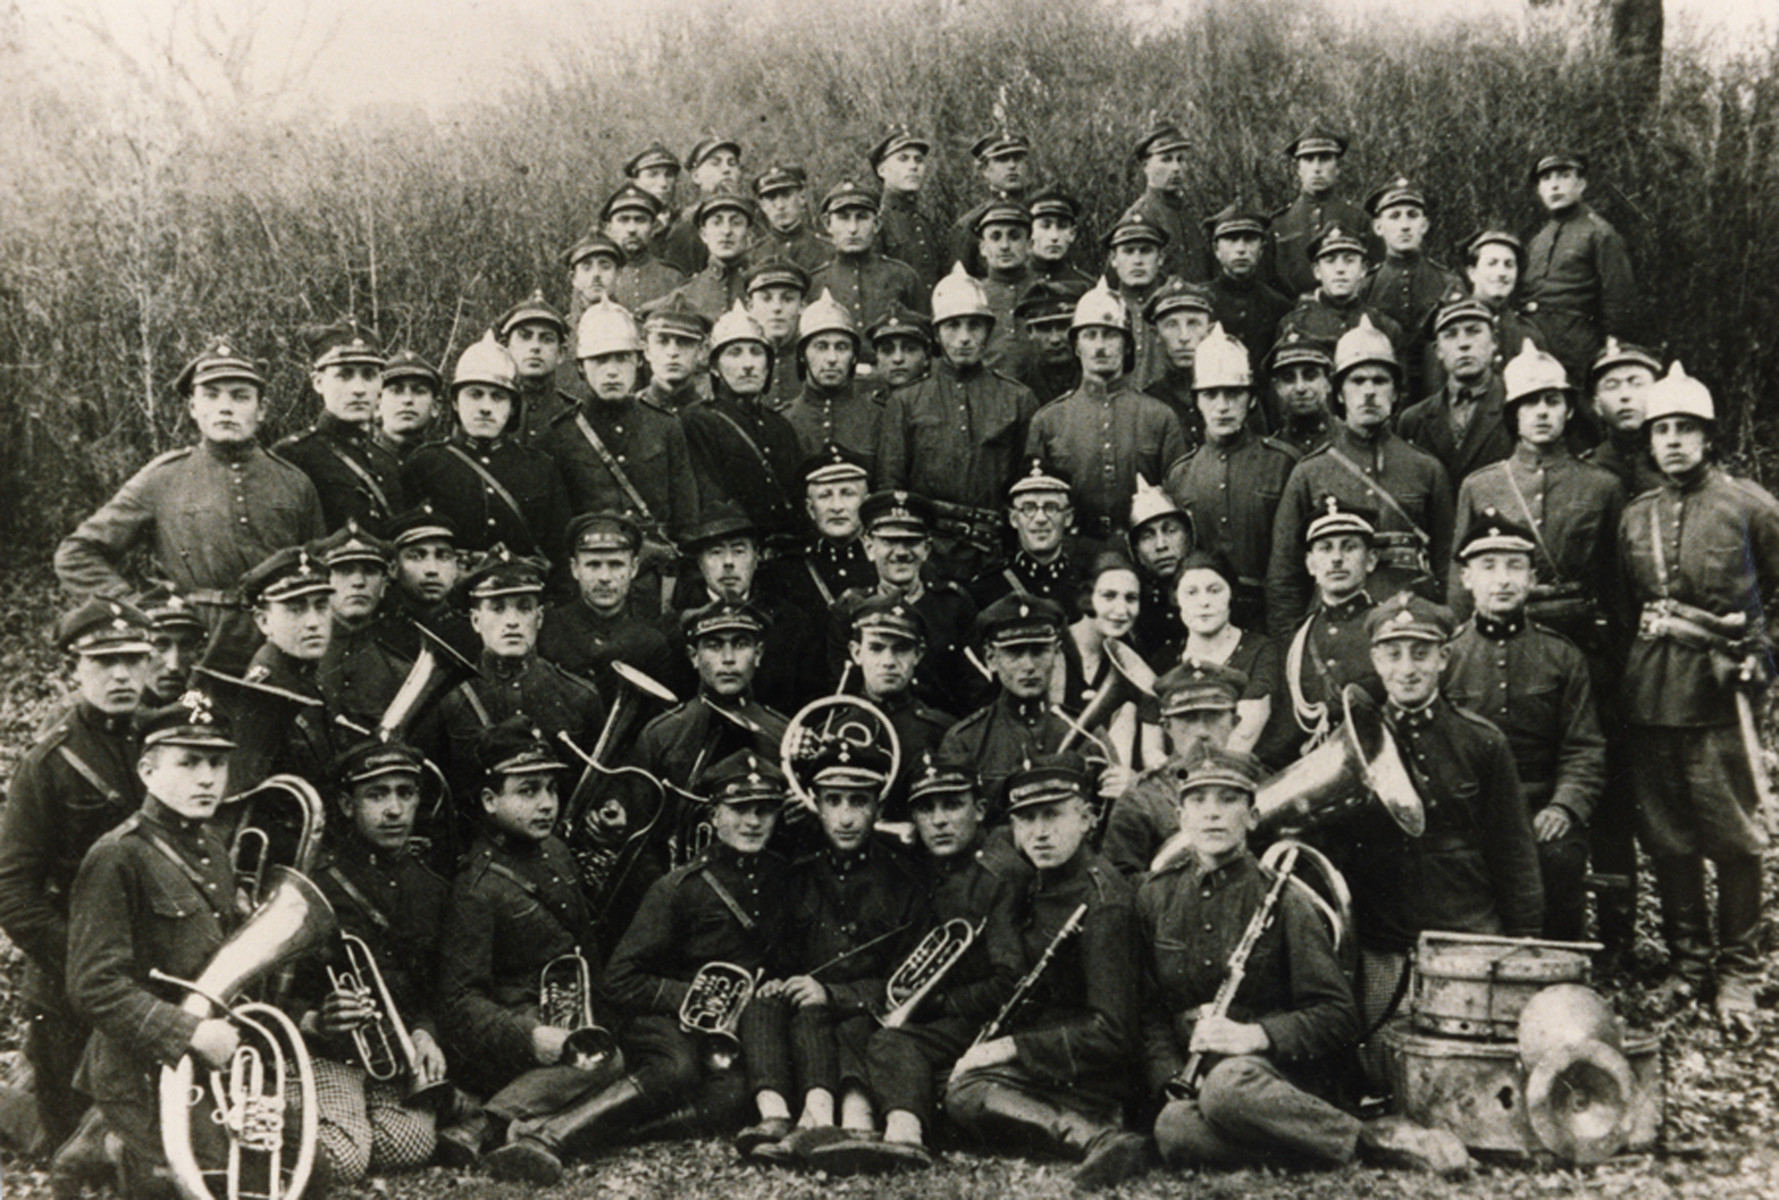 Group portrait of members of the Nowogrodek fire brigade, many are holding musical instruments.